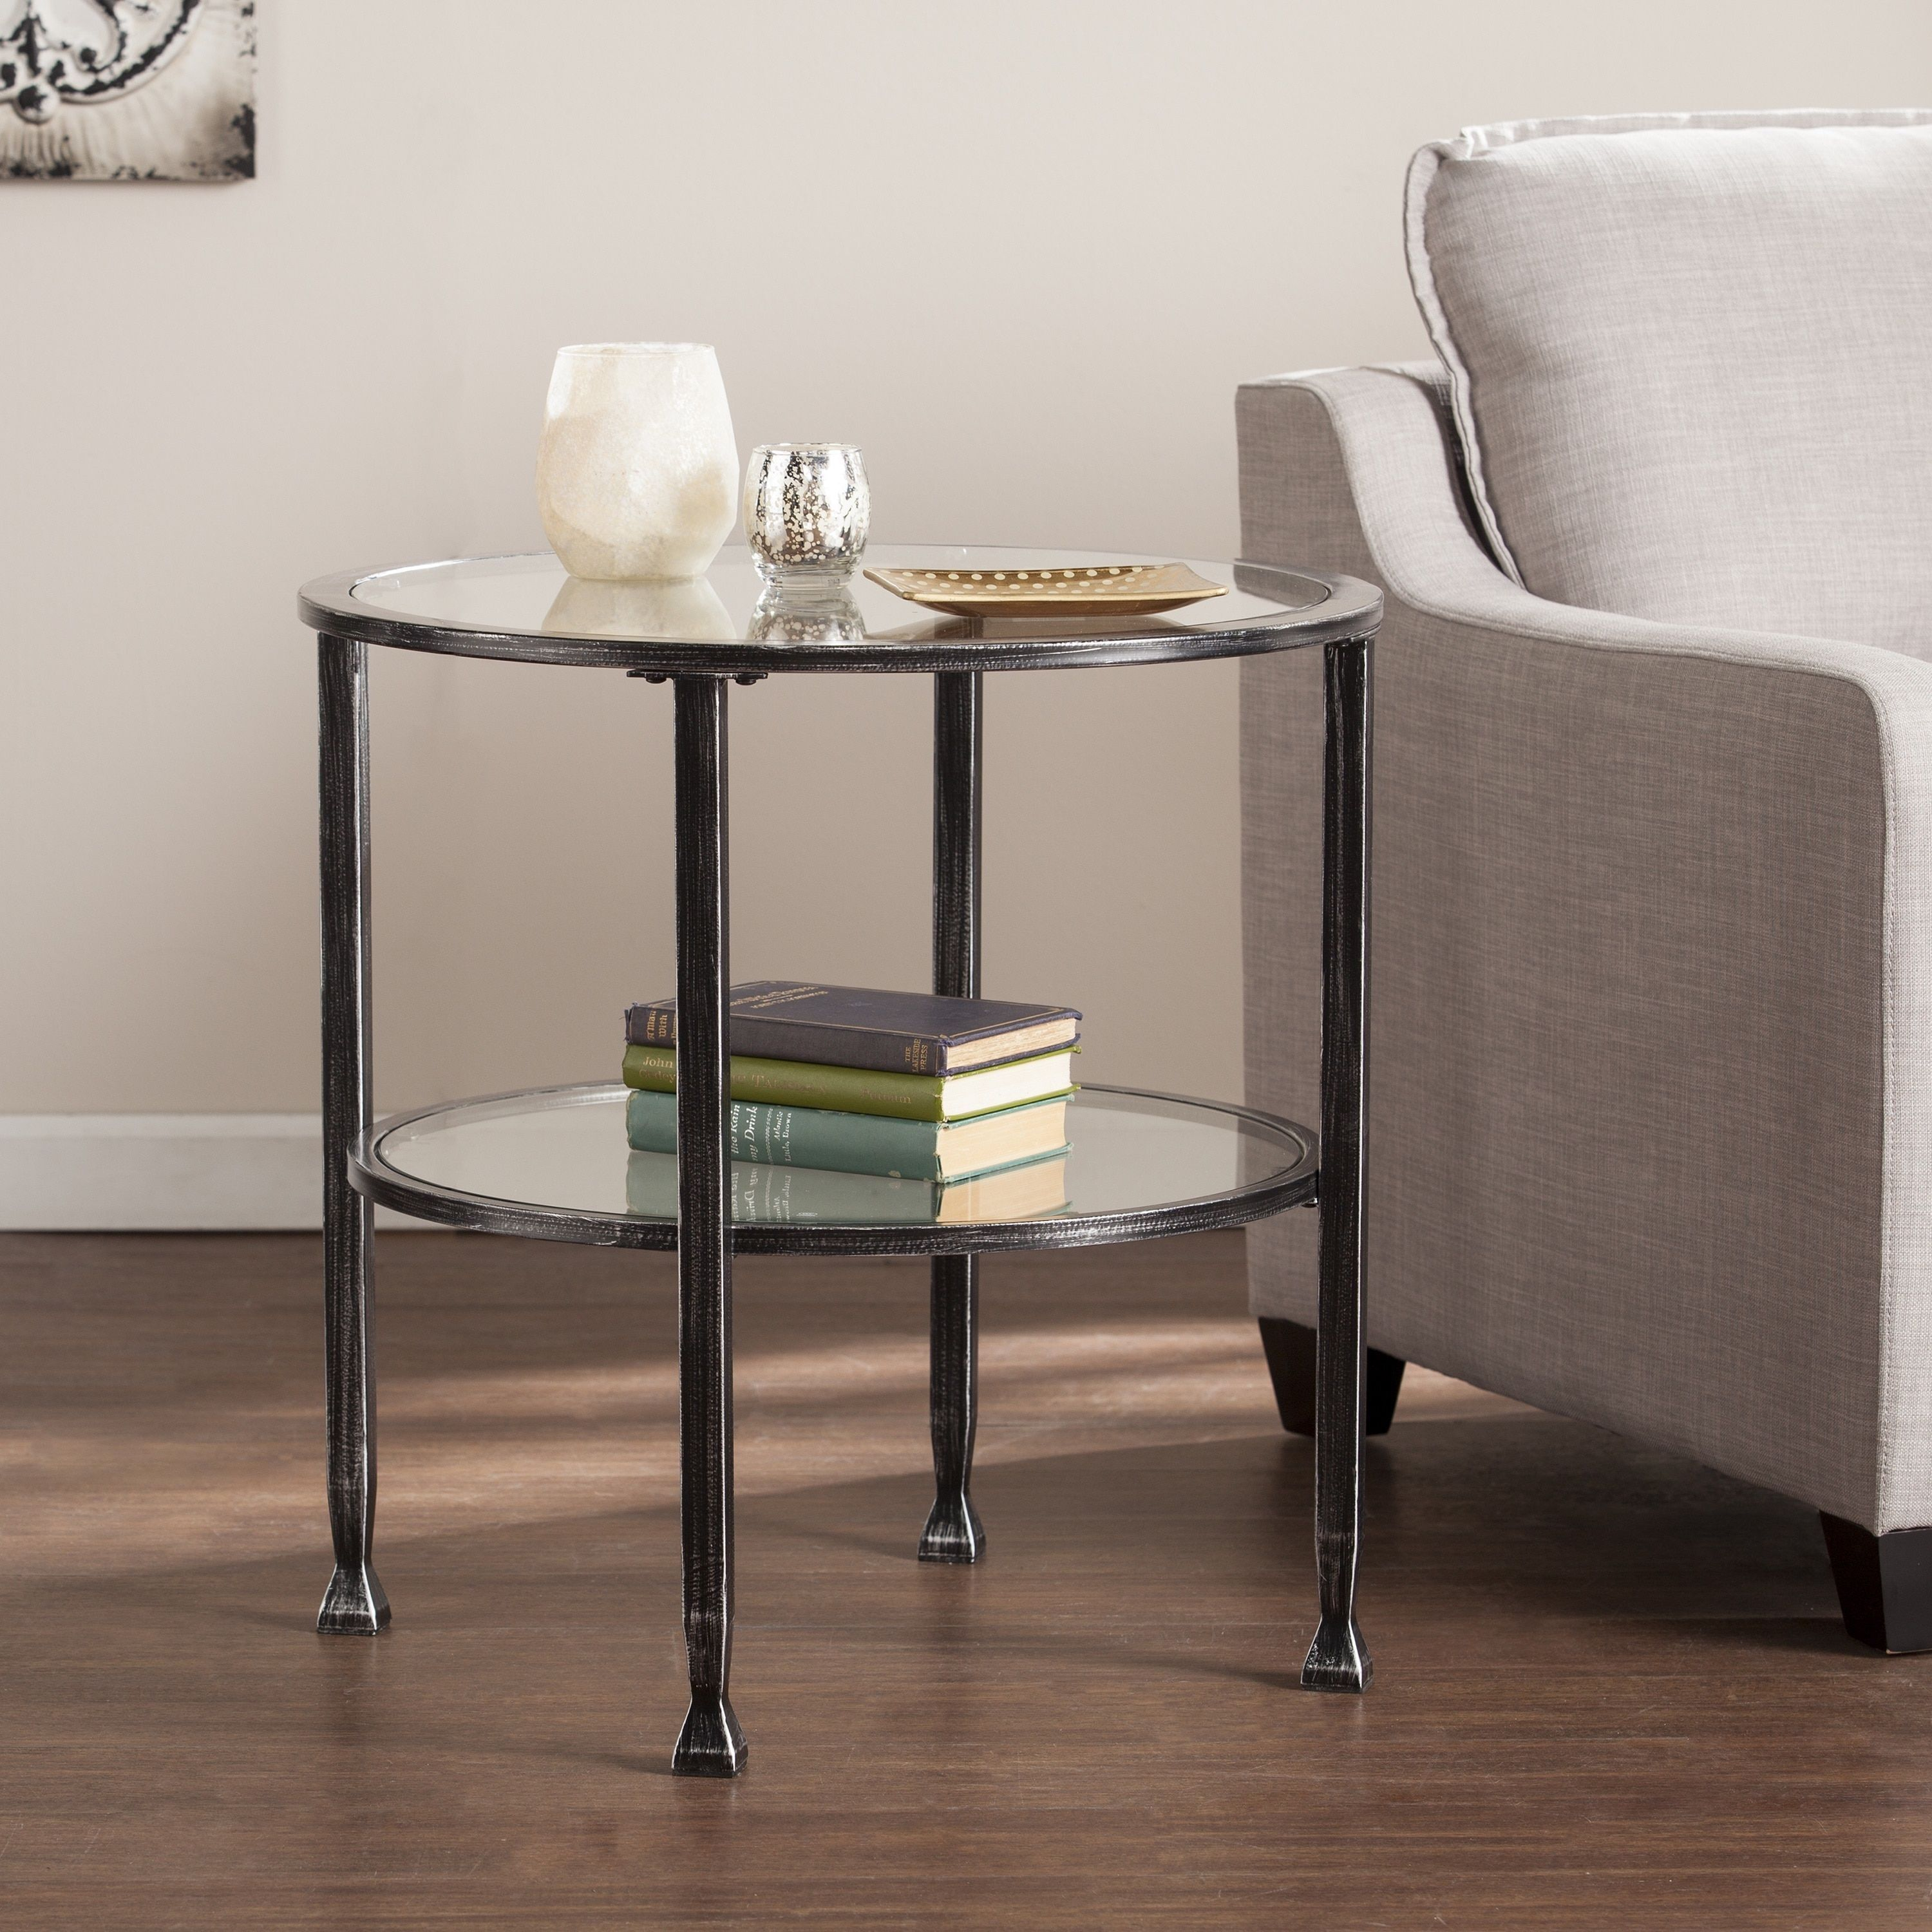 harper blvd jensen metal glass round end table black wood and accent dining room light fixtures cool bedside lamps inexpensive chairs furniture for the home teal placemats napkins